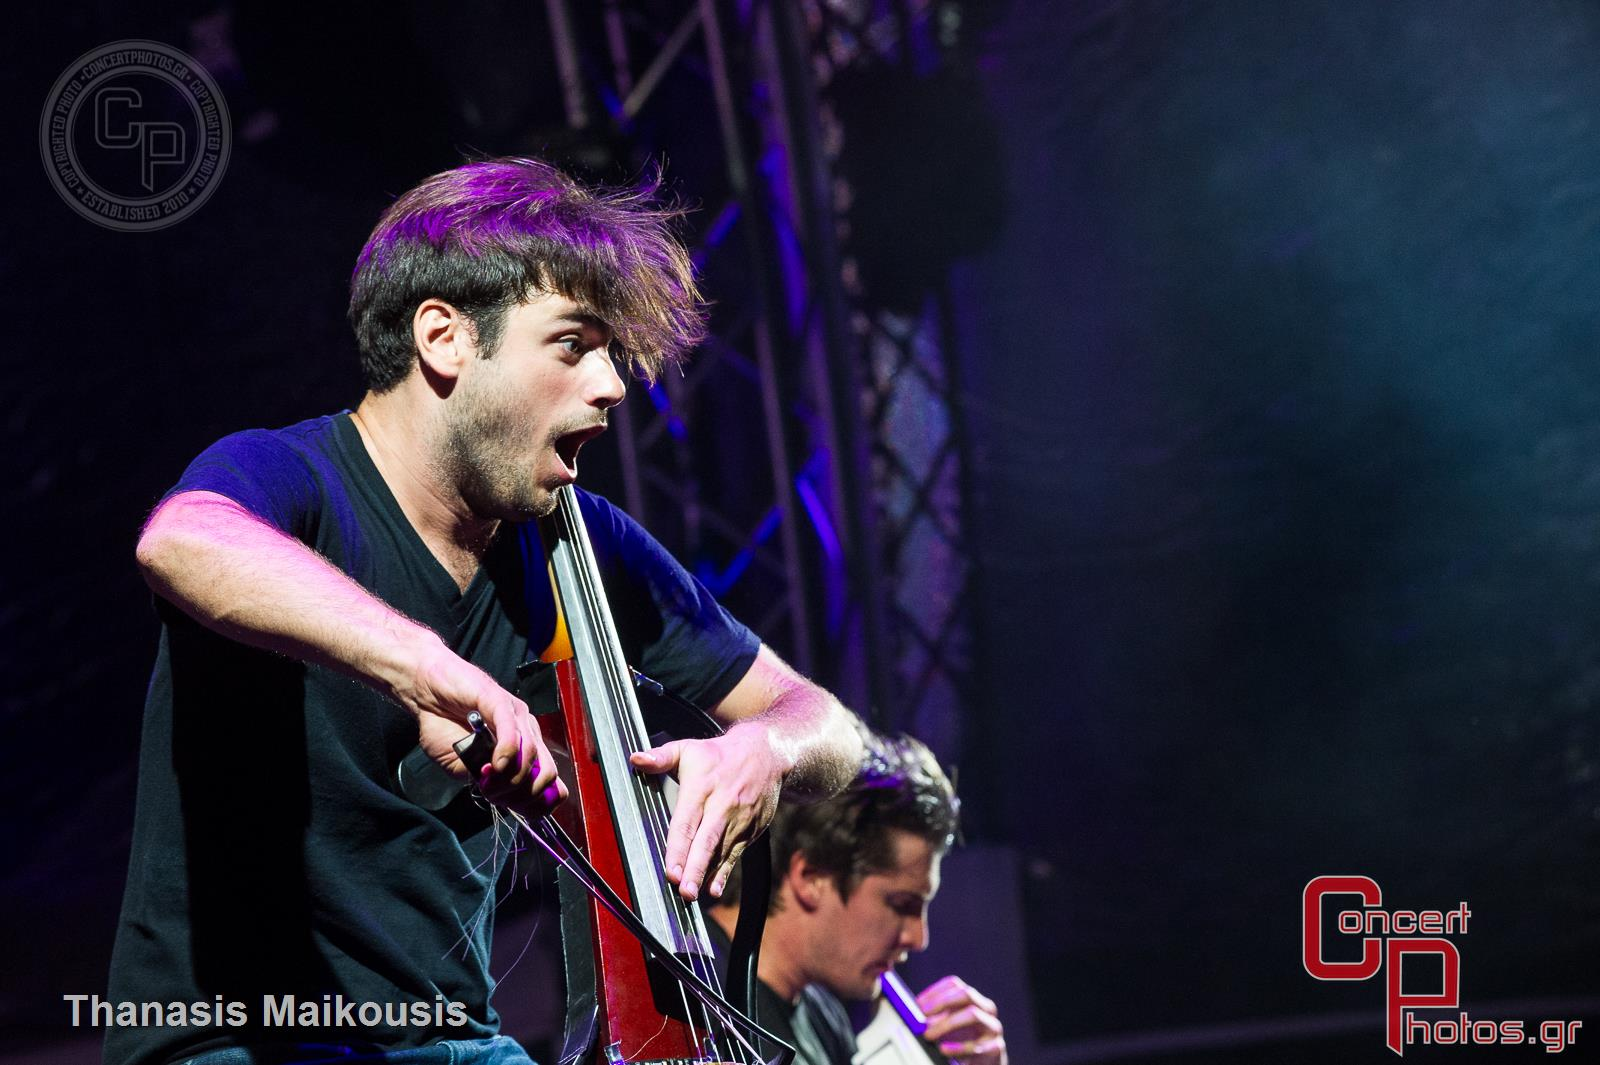 2Cellos-2Cellos Technopolis photographer: Thanasis Maikousis - untitled shoot-6287